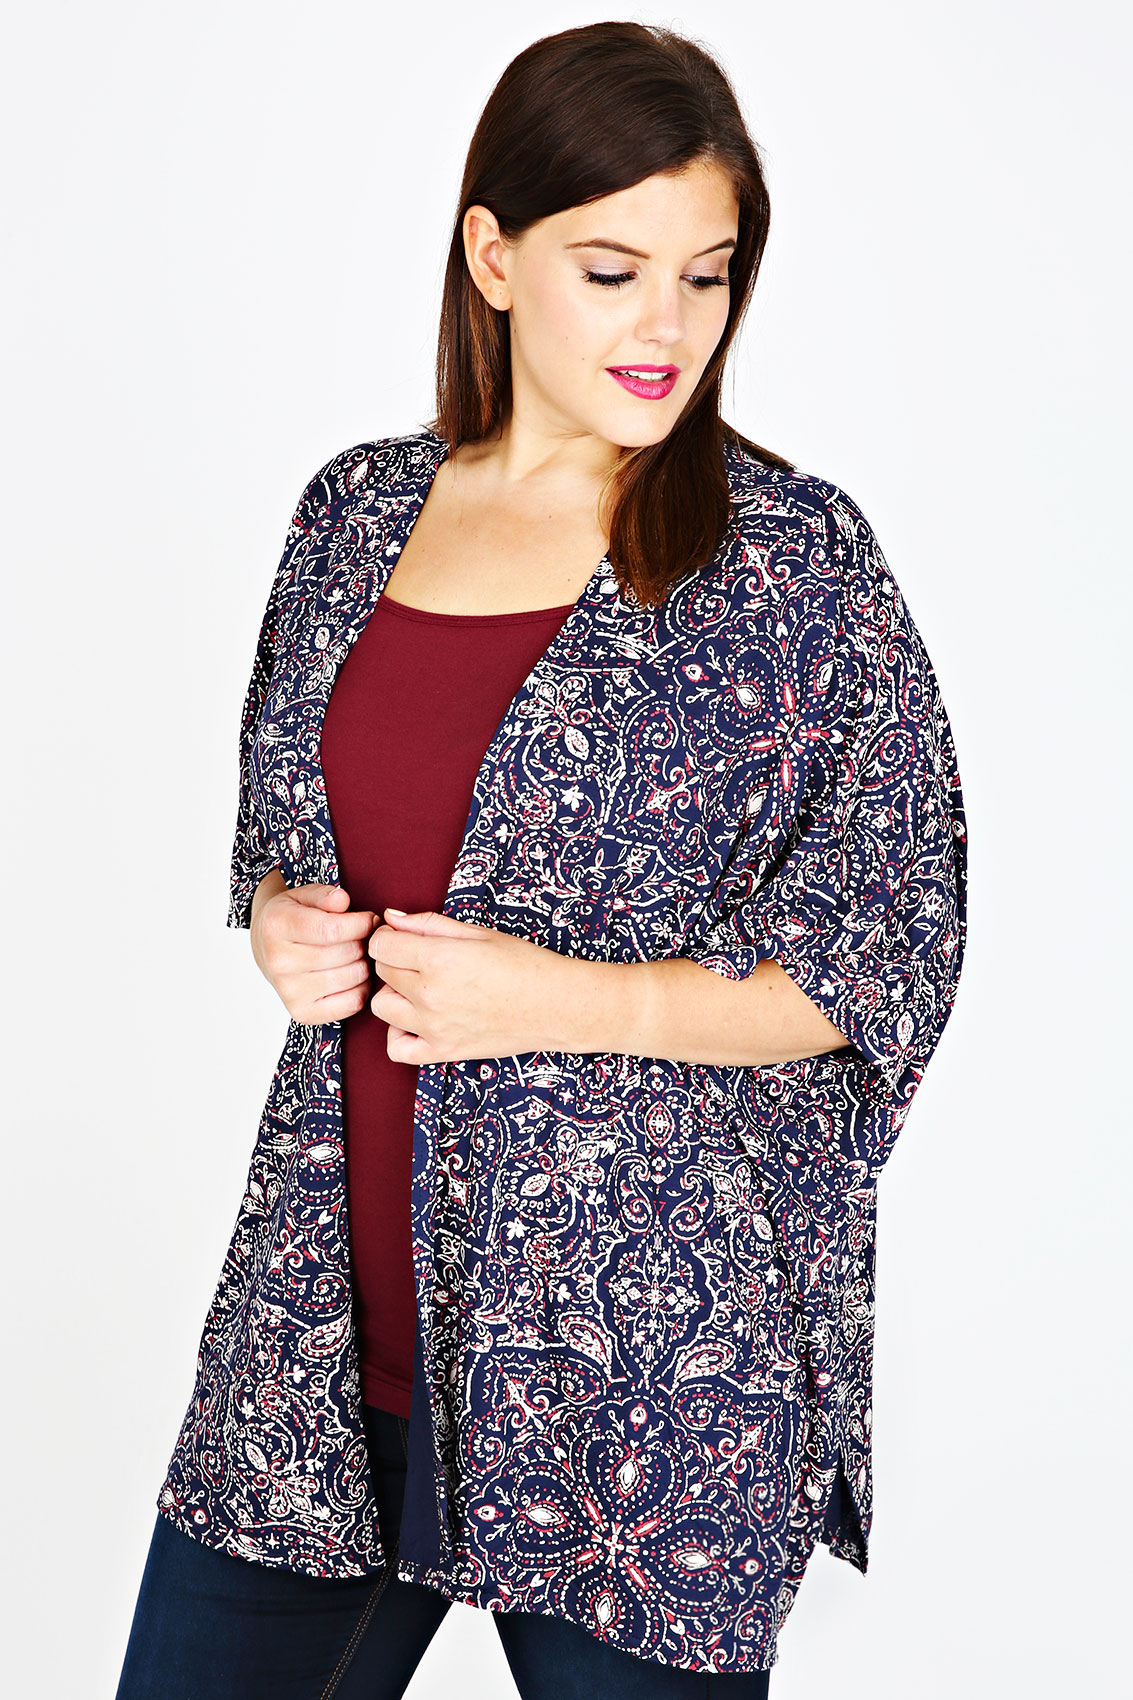 Shop for plus size kimonos online at Target. Free shipping on purchases over $35 and save 5% every day with your Target REDcard.